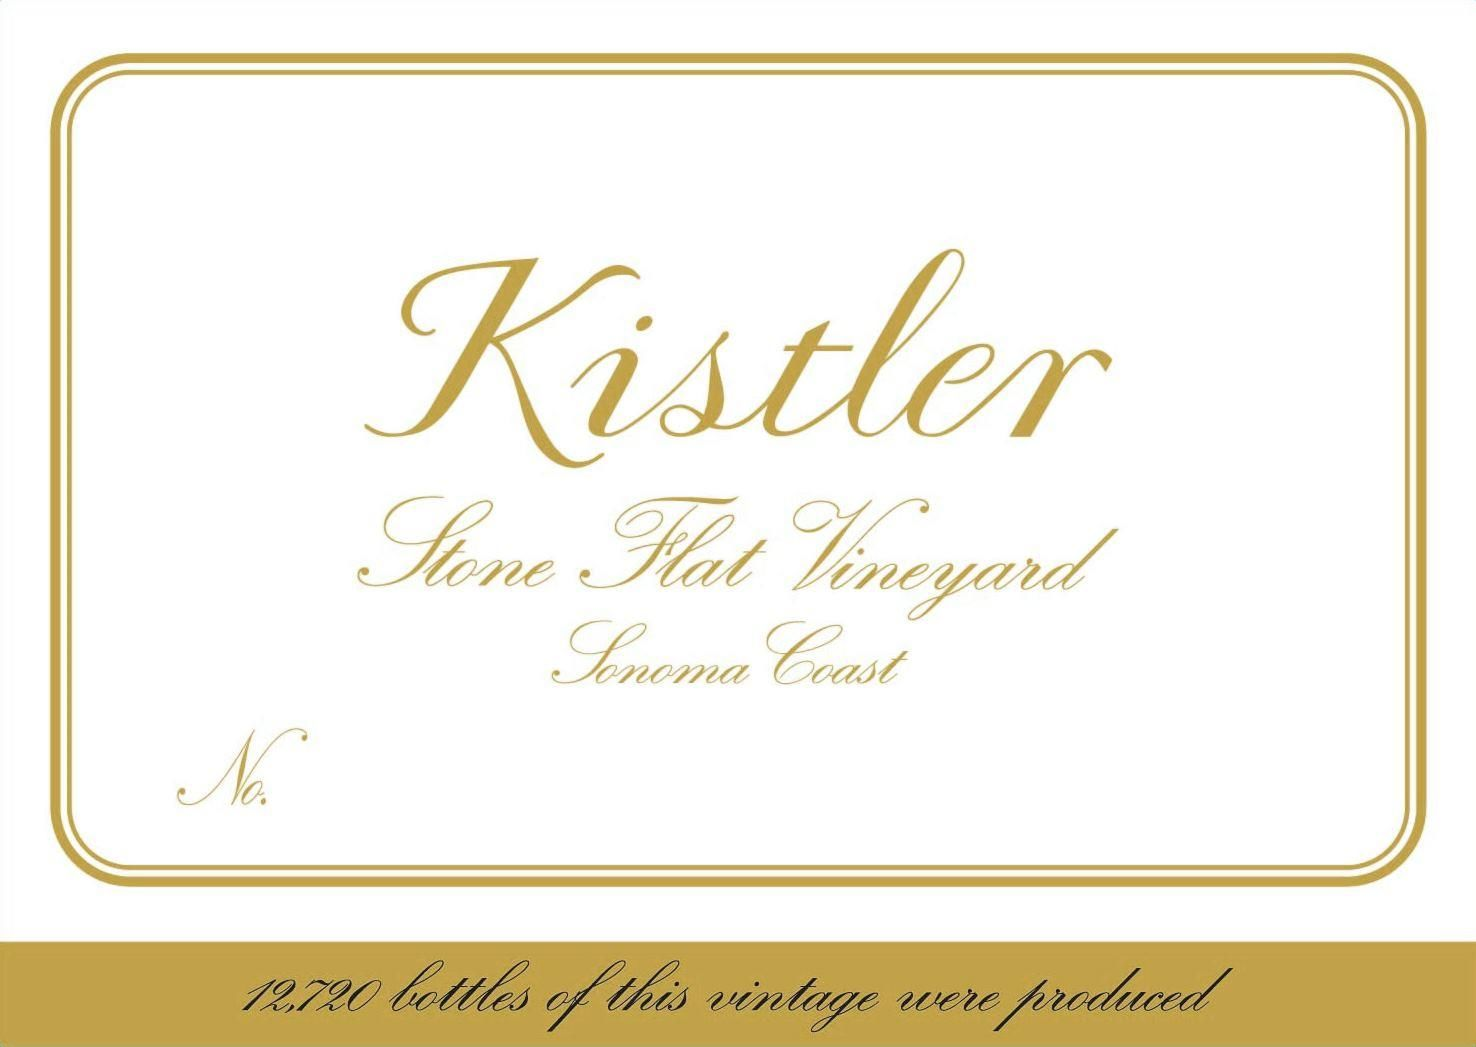 Kistler Vineyards Stone Flat Vineyard Chardonnay 2012  Front Label